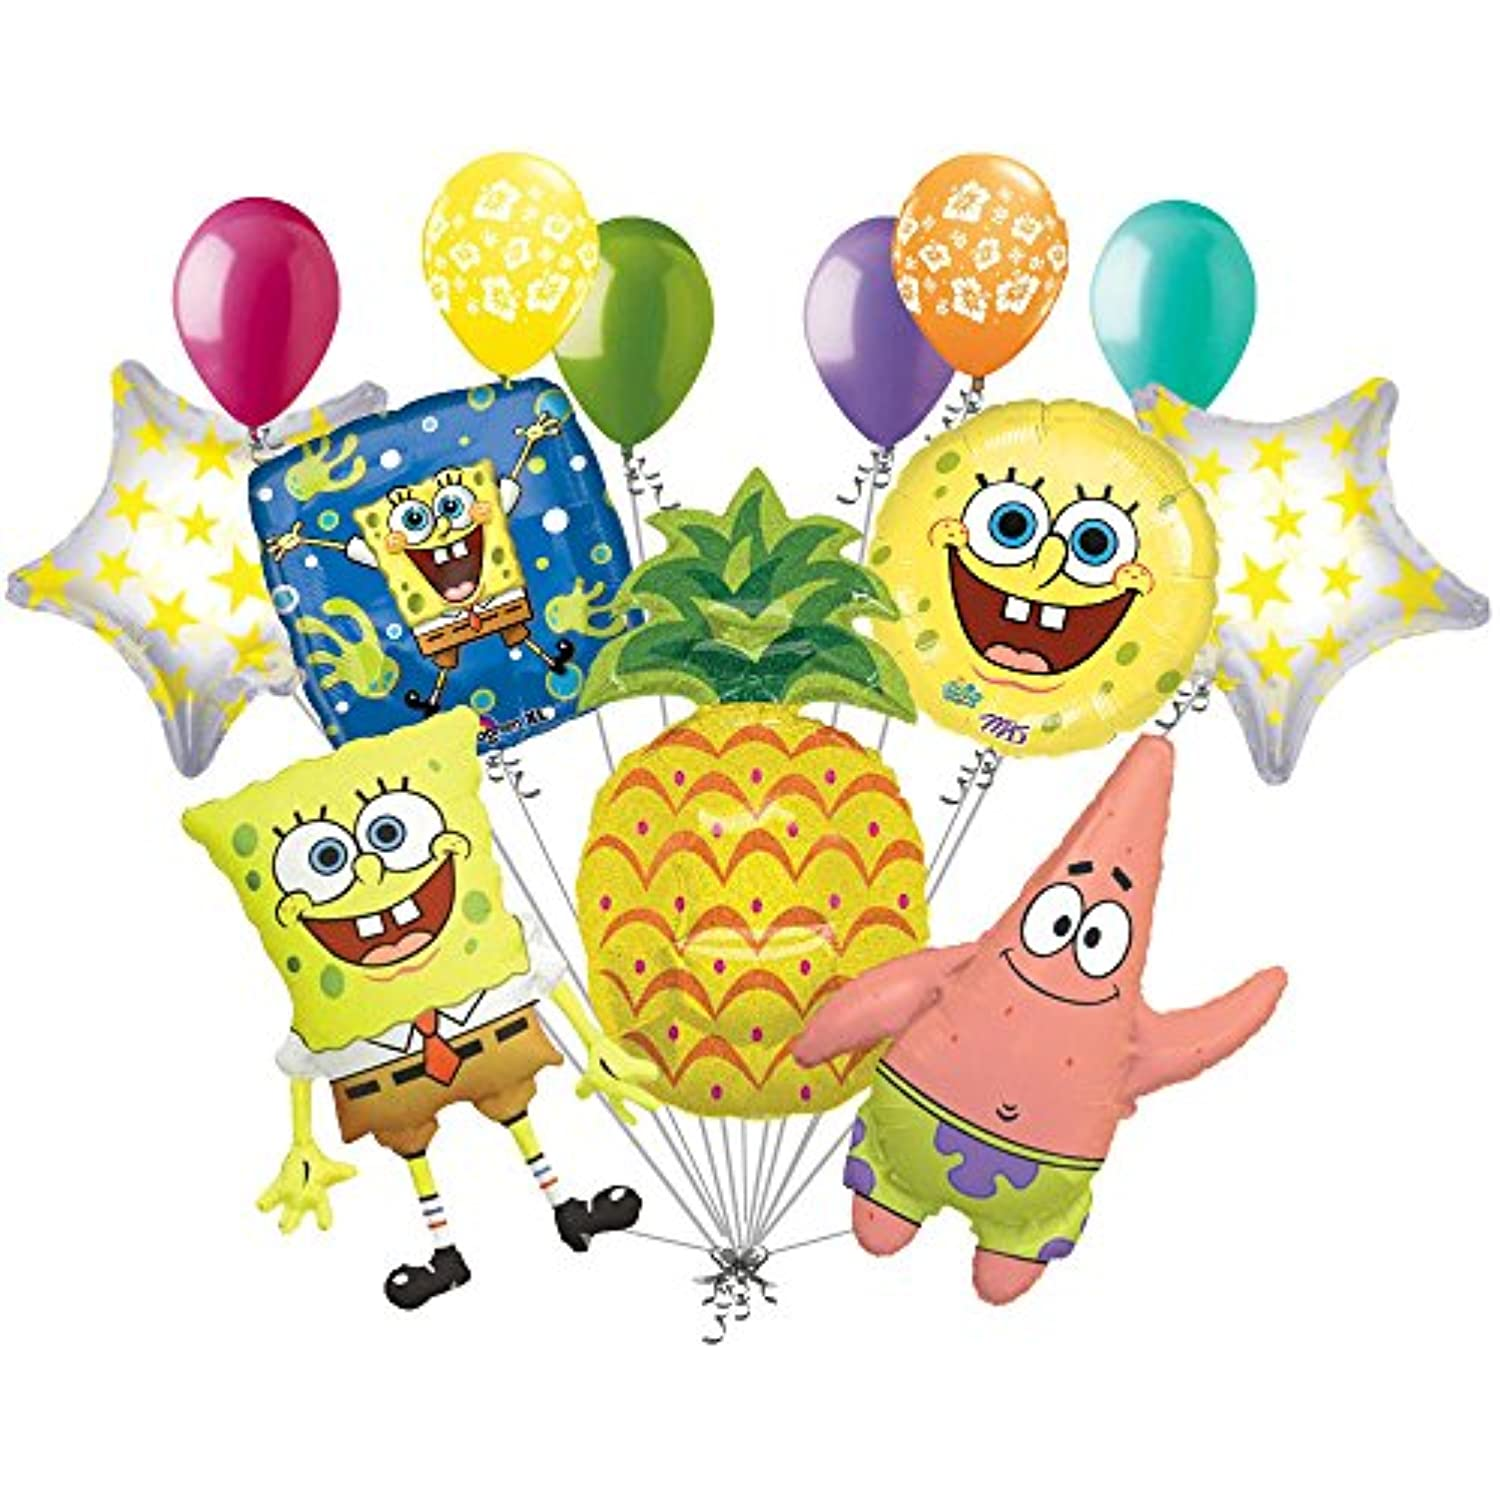 13個入りSpongebob Patrick Pineapple Balloon Bouquet Party Happy Birthdayスポンジボブ